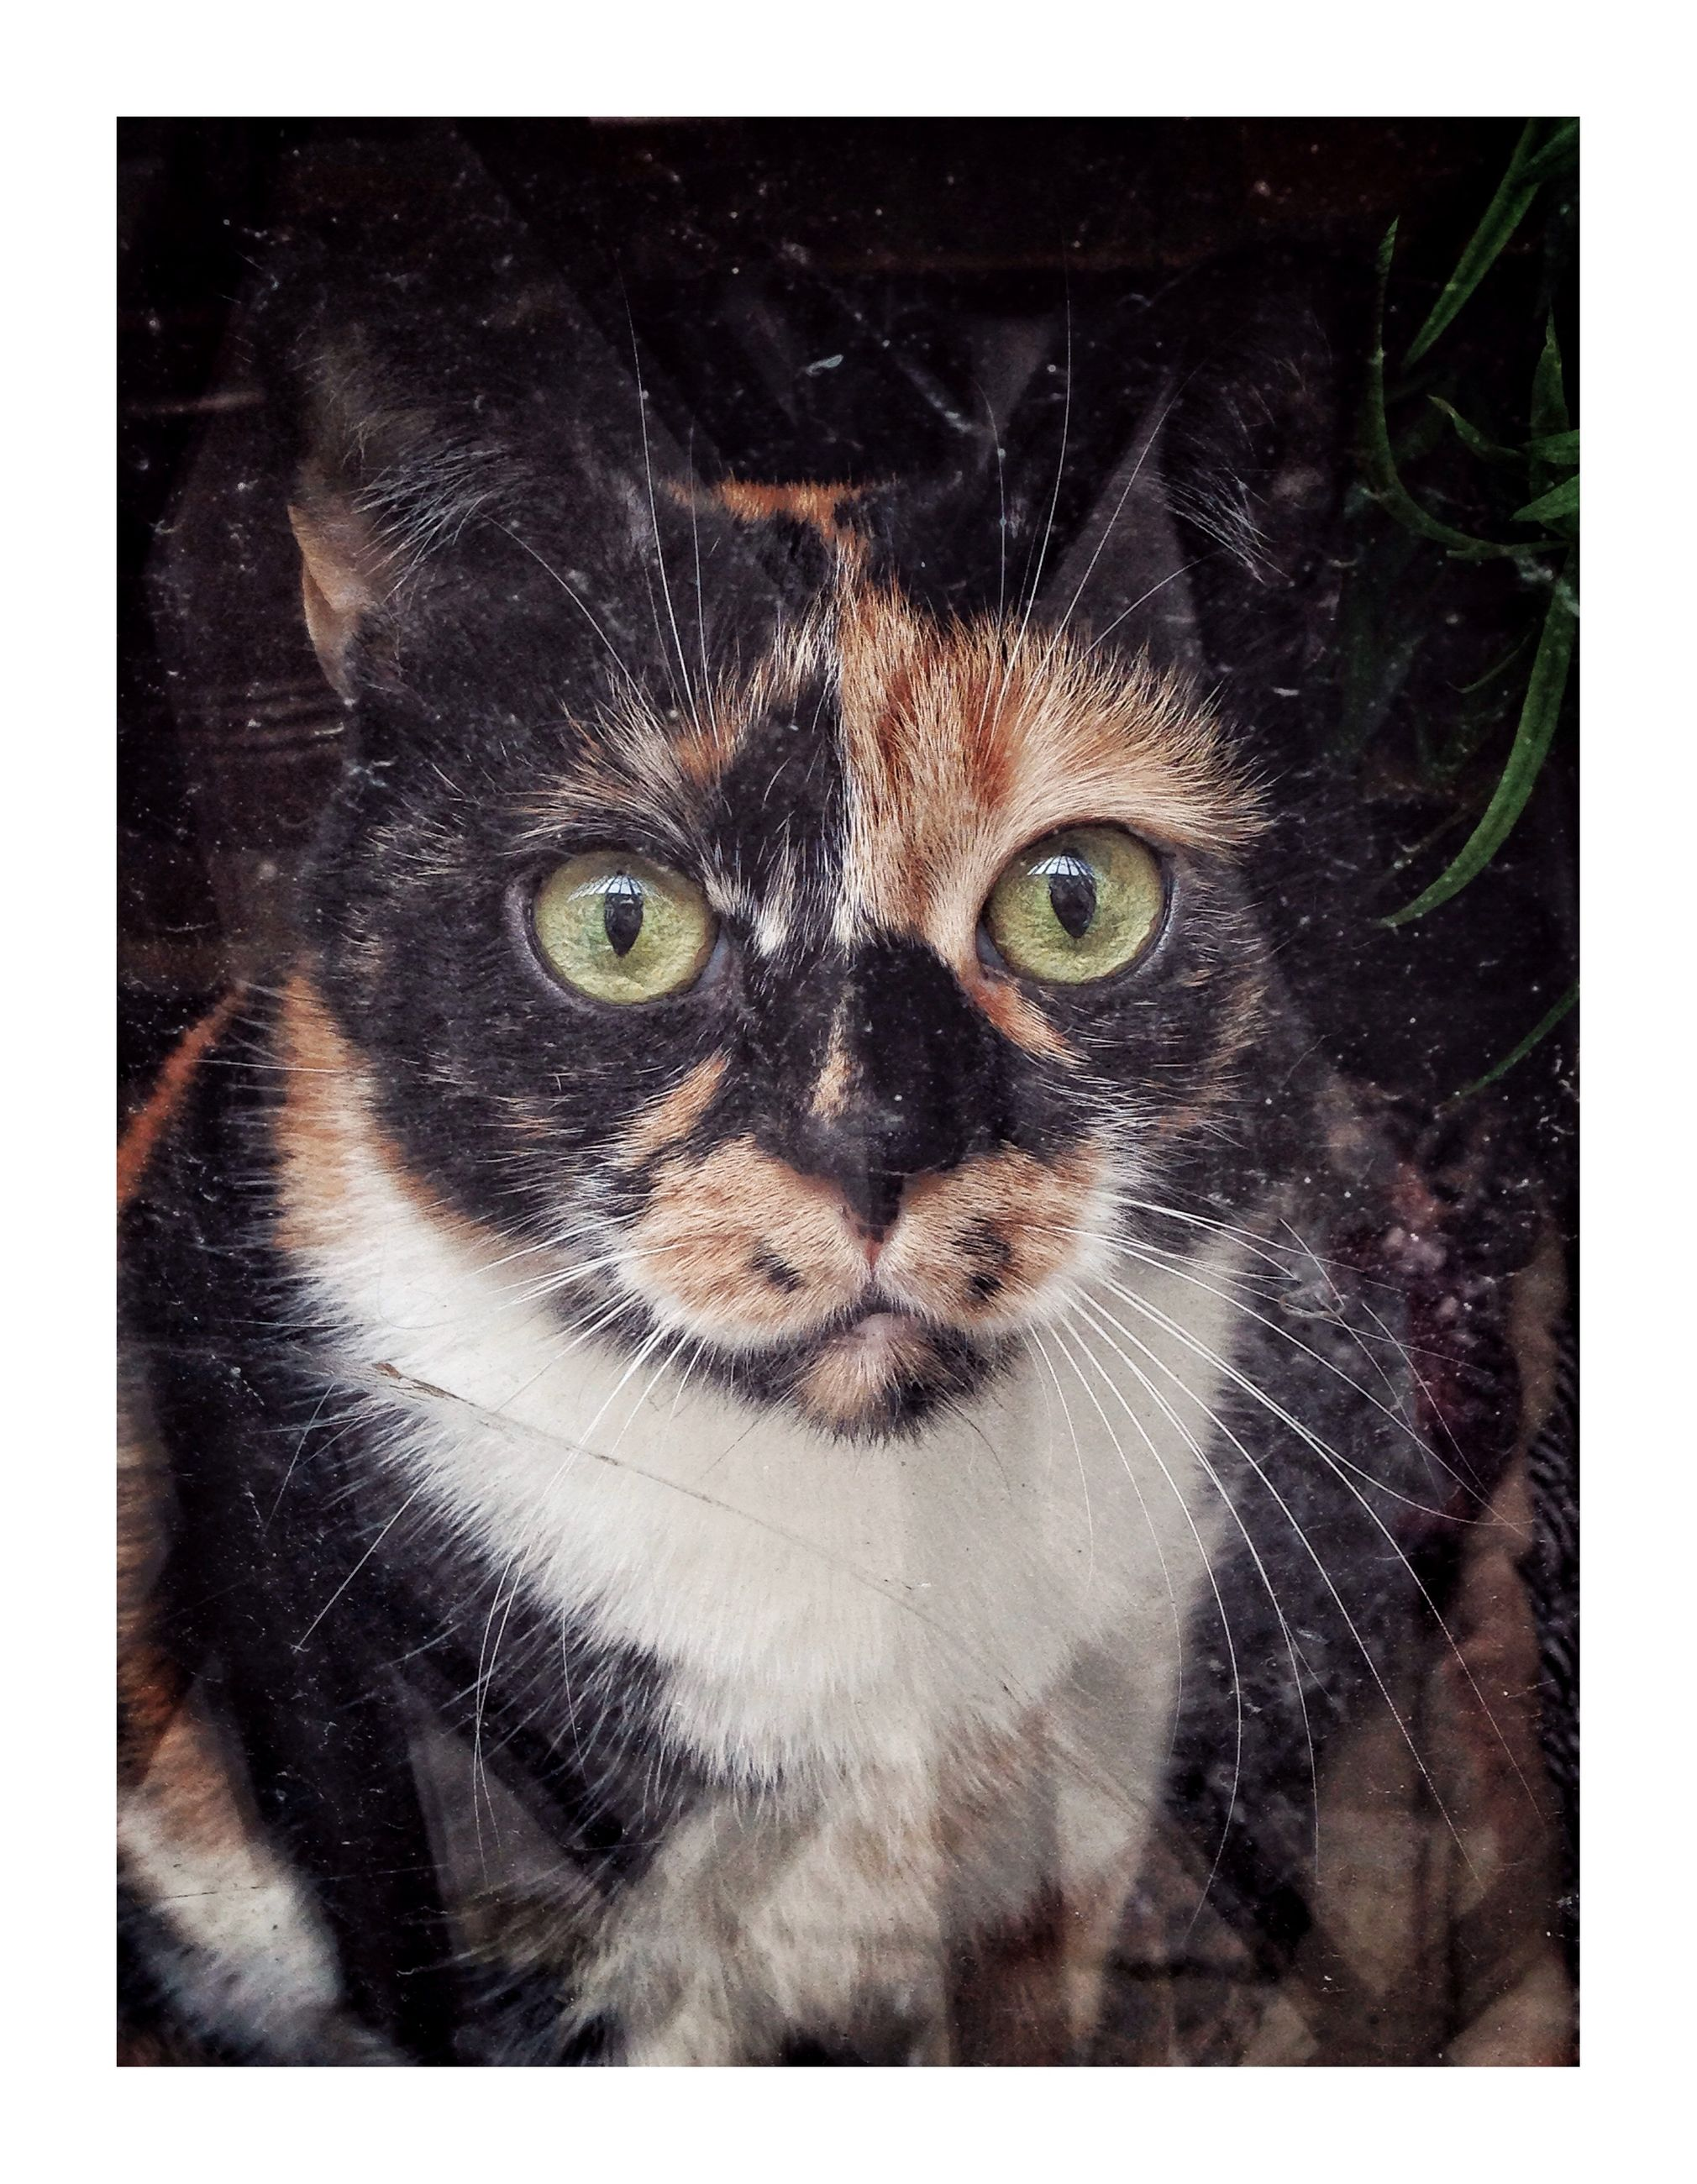 cat, pets, domestic, domestic cat, mammal, one animal, feline, domestic animals, portrait, looking at camera, close-up, transfer print, whisker, animal body part, auto post production filter, people, studio shot, animal eye